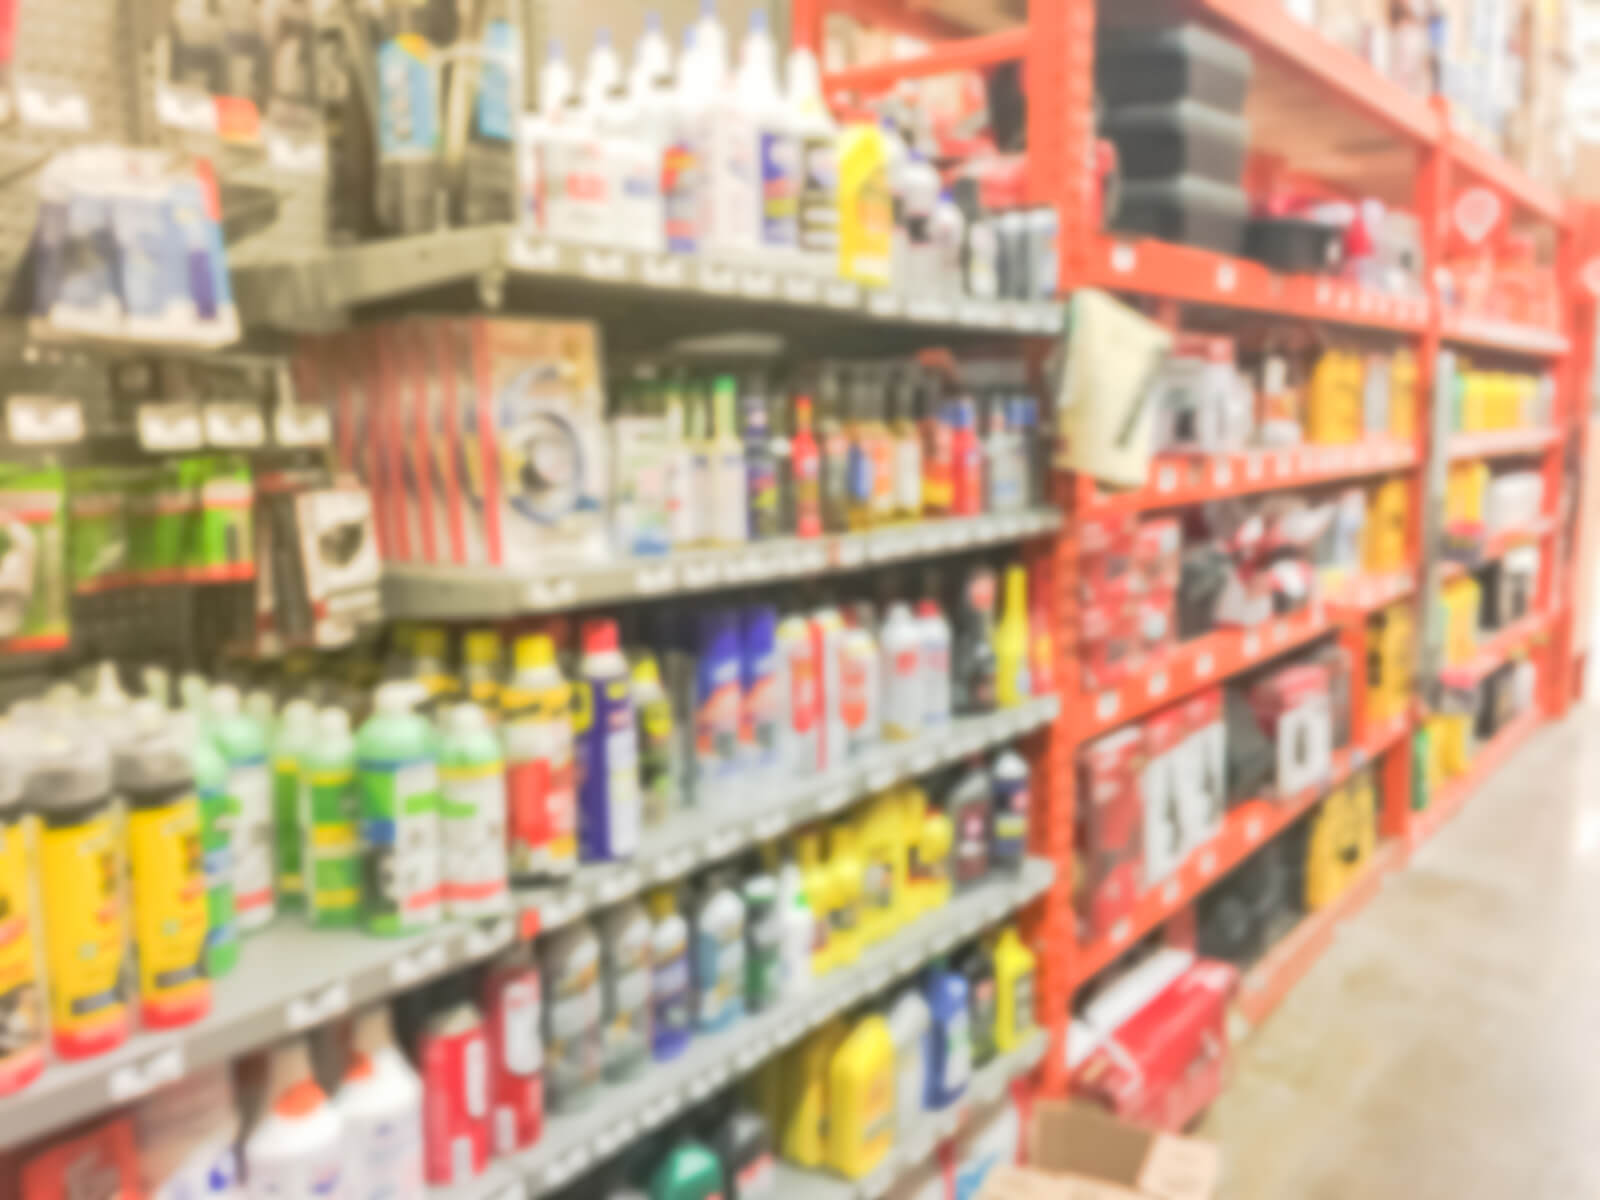 home improvement products on shelf in store